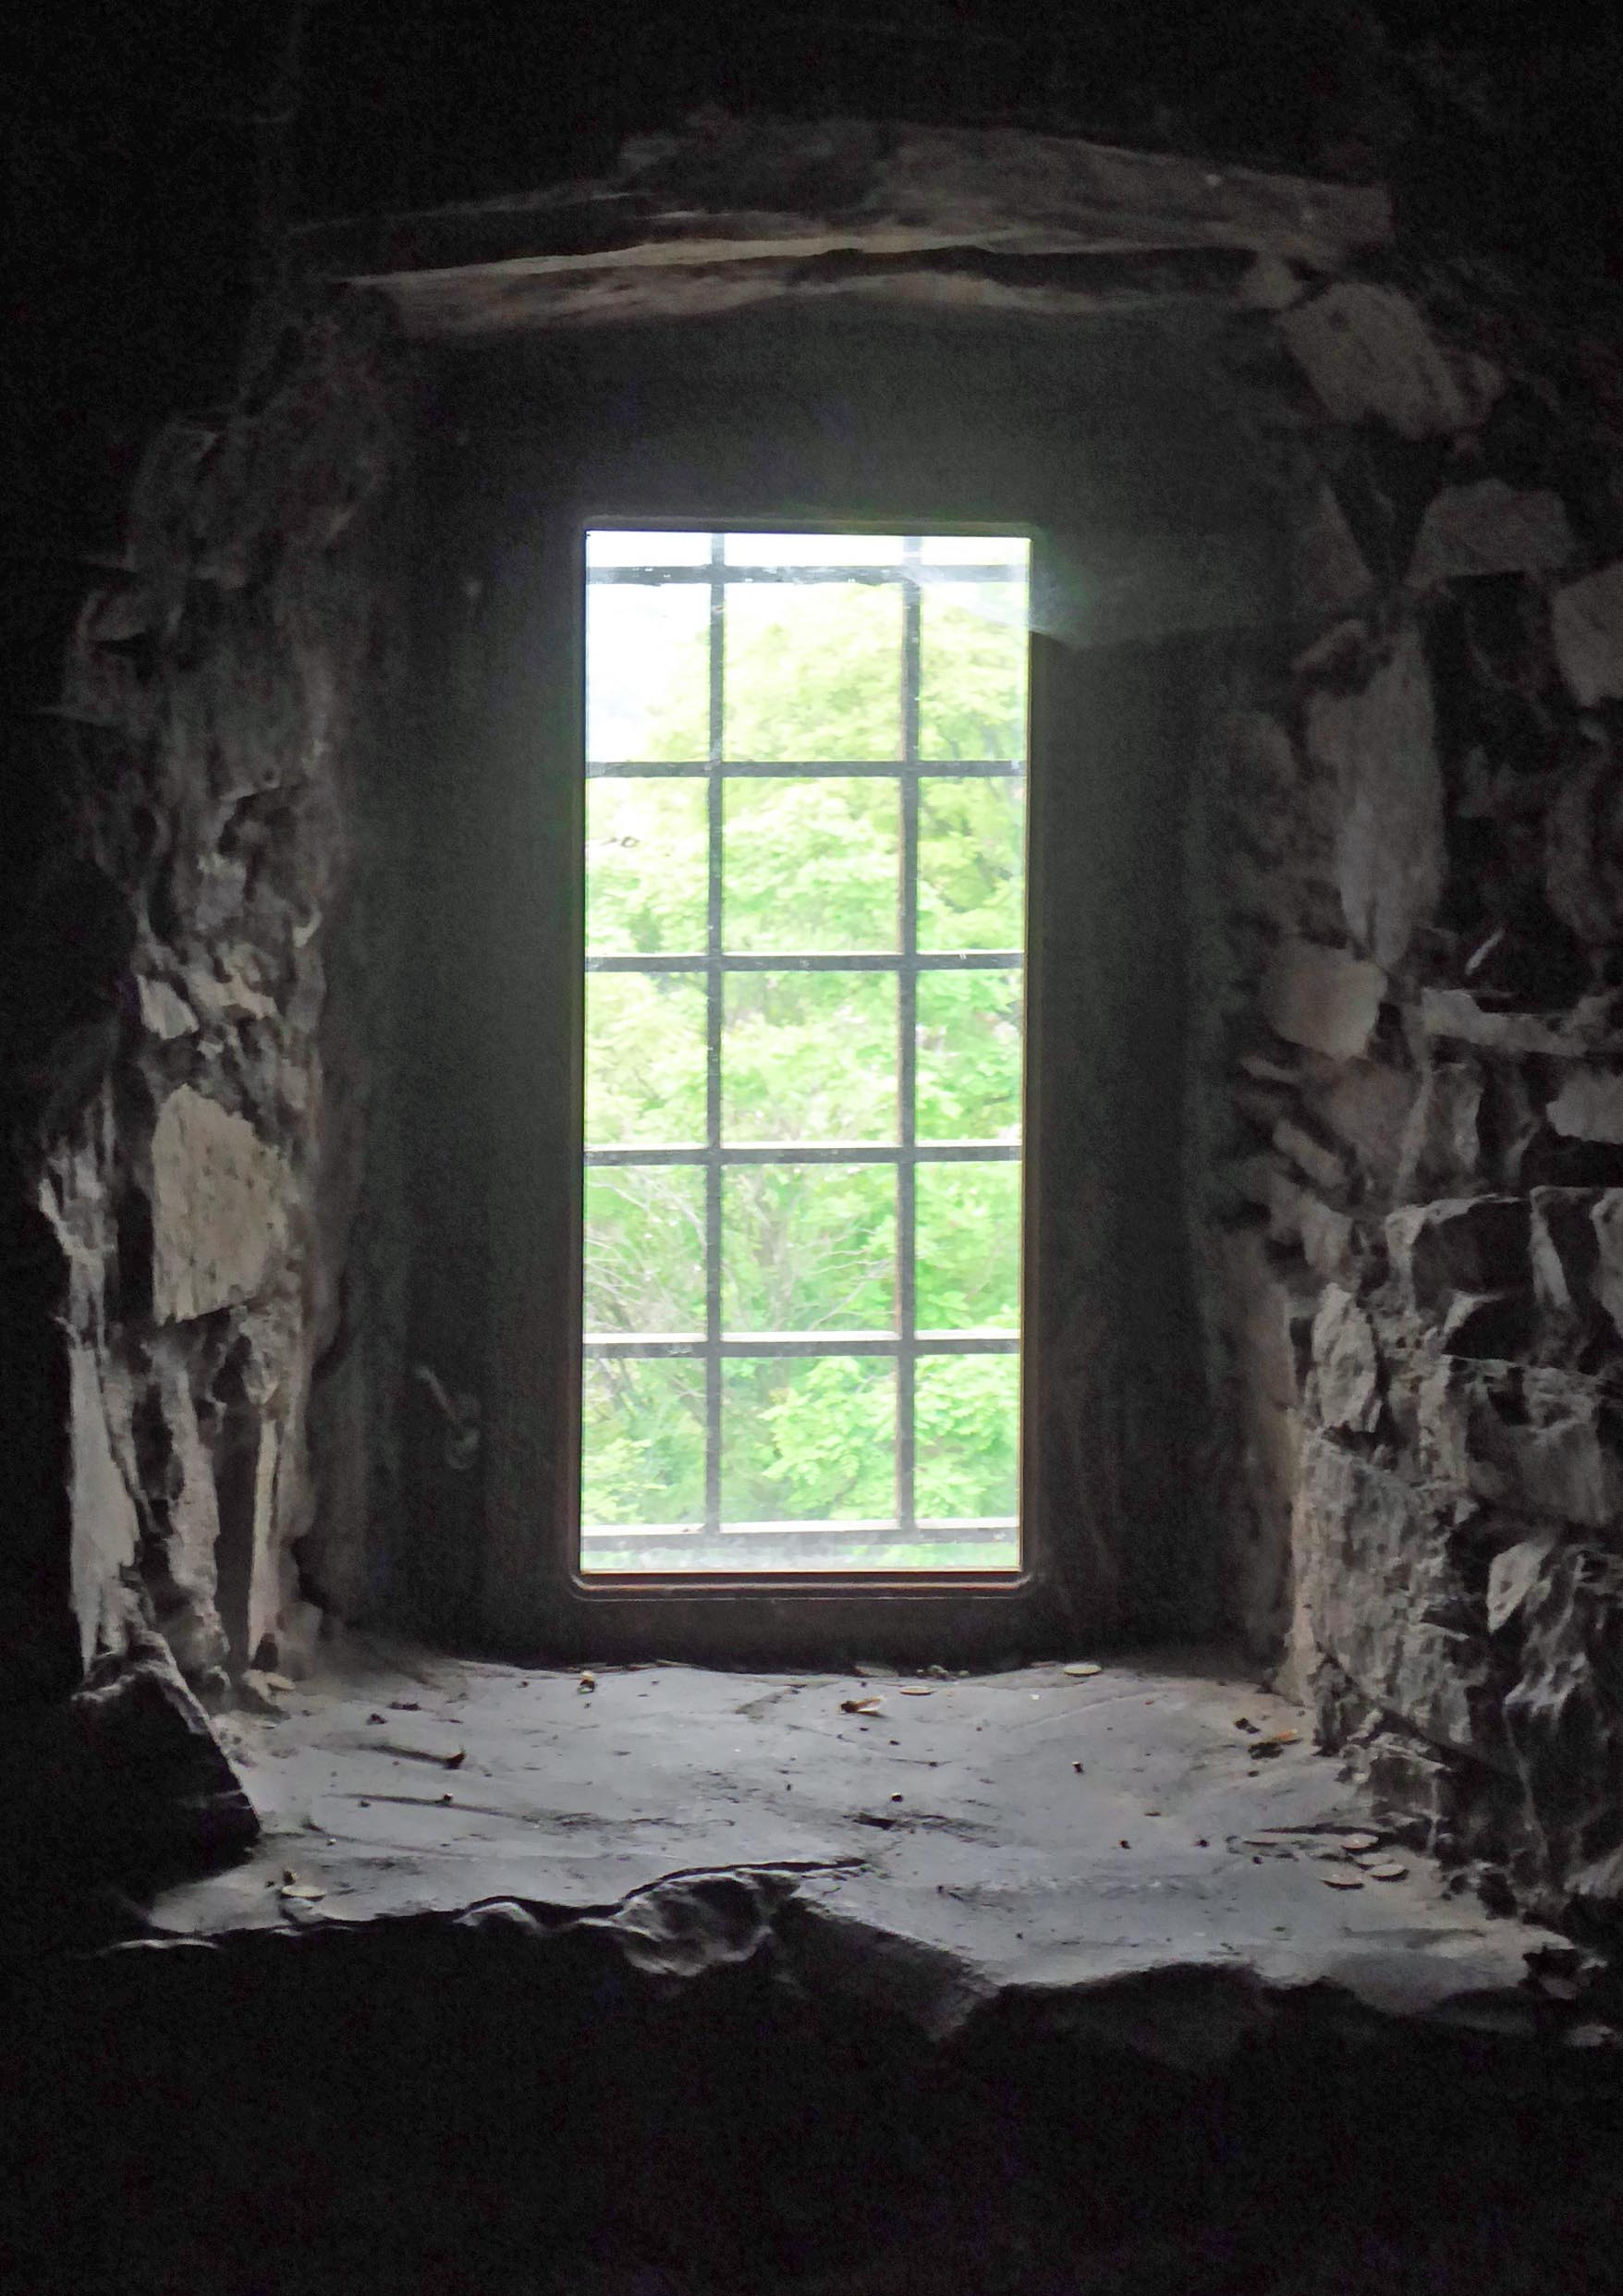 Small window set in a thick stone wall